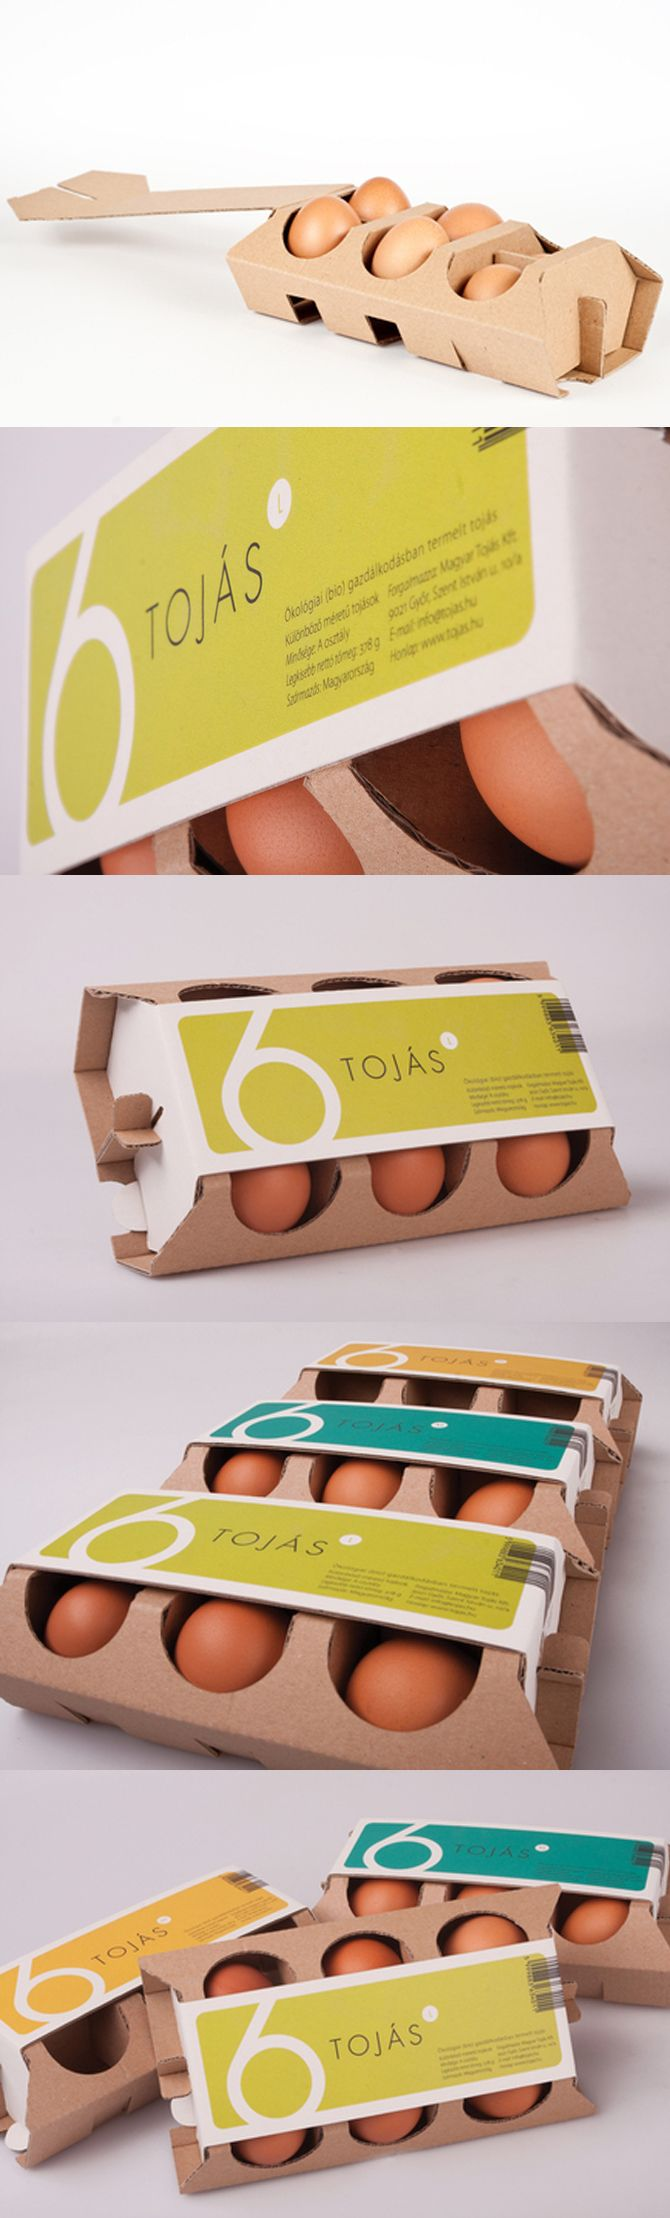 What Came First? The Chicken, The Egg Or The Packaging? | We Design Packaging.